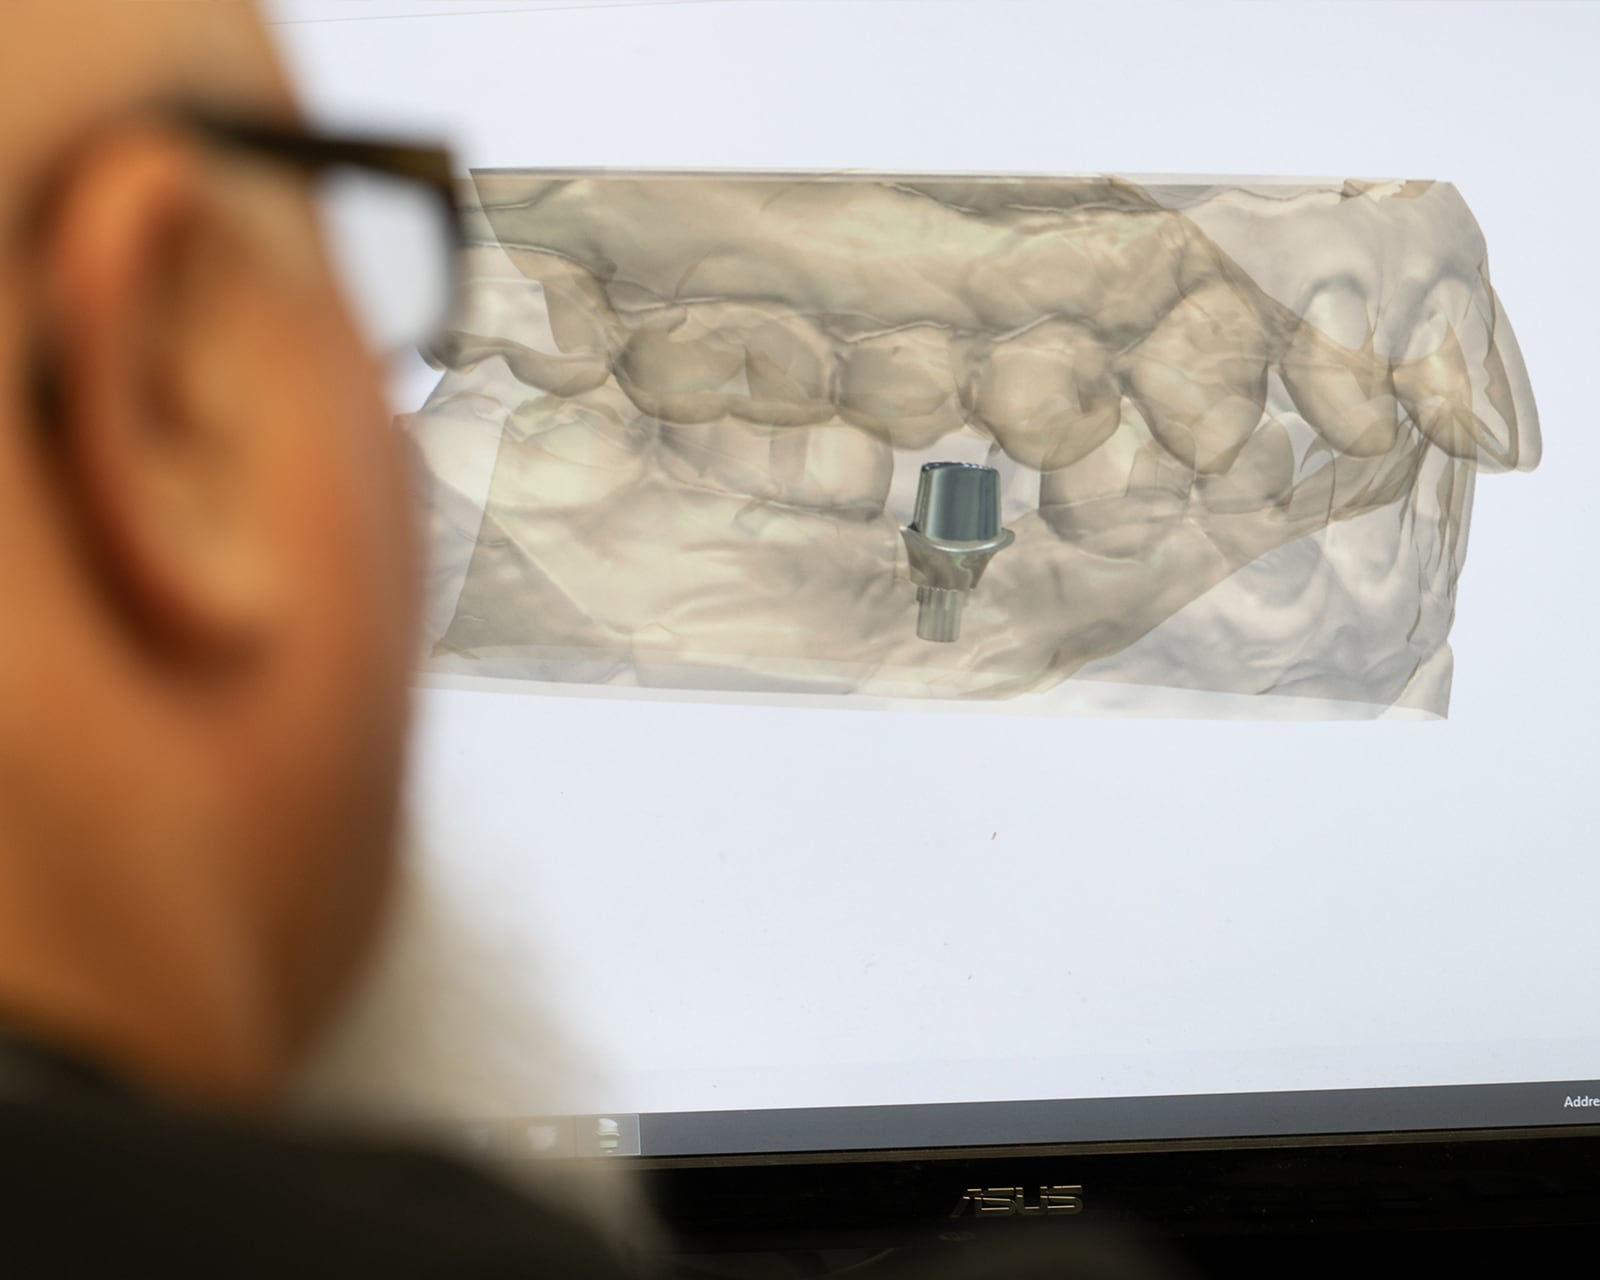 Dentist looking at 3D model of teeth on a screen.